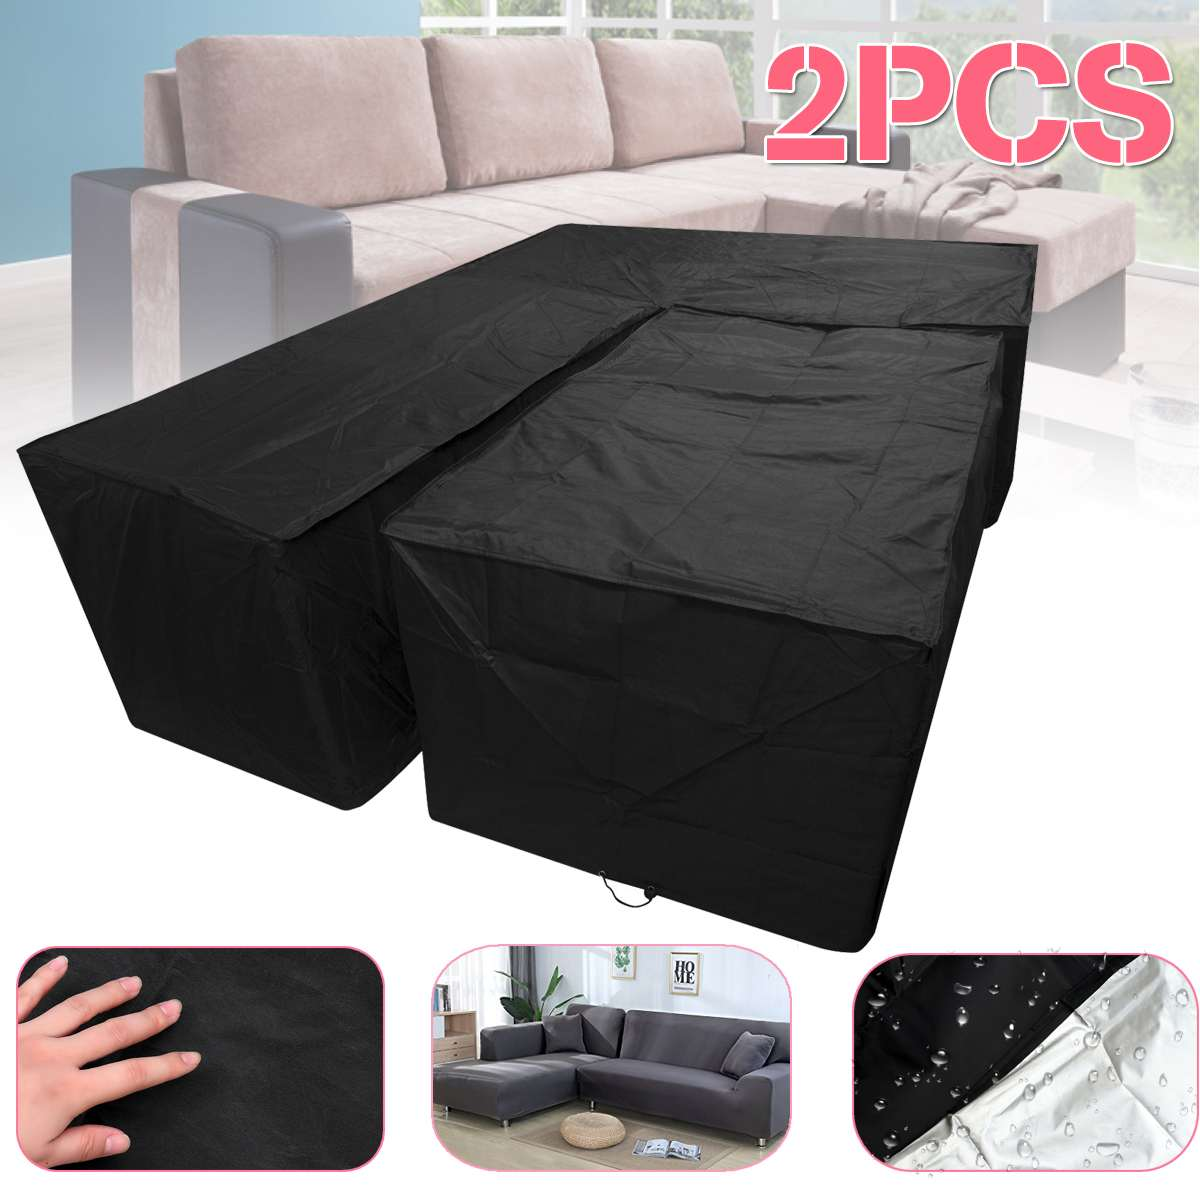 Patio Sectional Sofa Cover V-Shaped Furniture Protector Premium Outdoor Waterproof /& Dustproof Furniture Outdoor Outside Cover Size : 215x215x87cm Garden Couch Cover